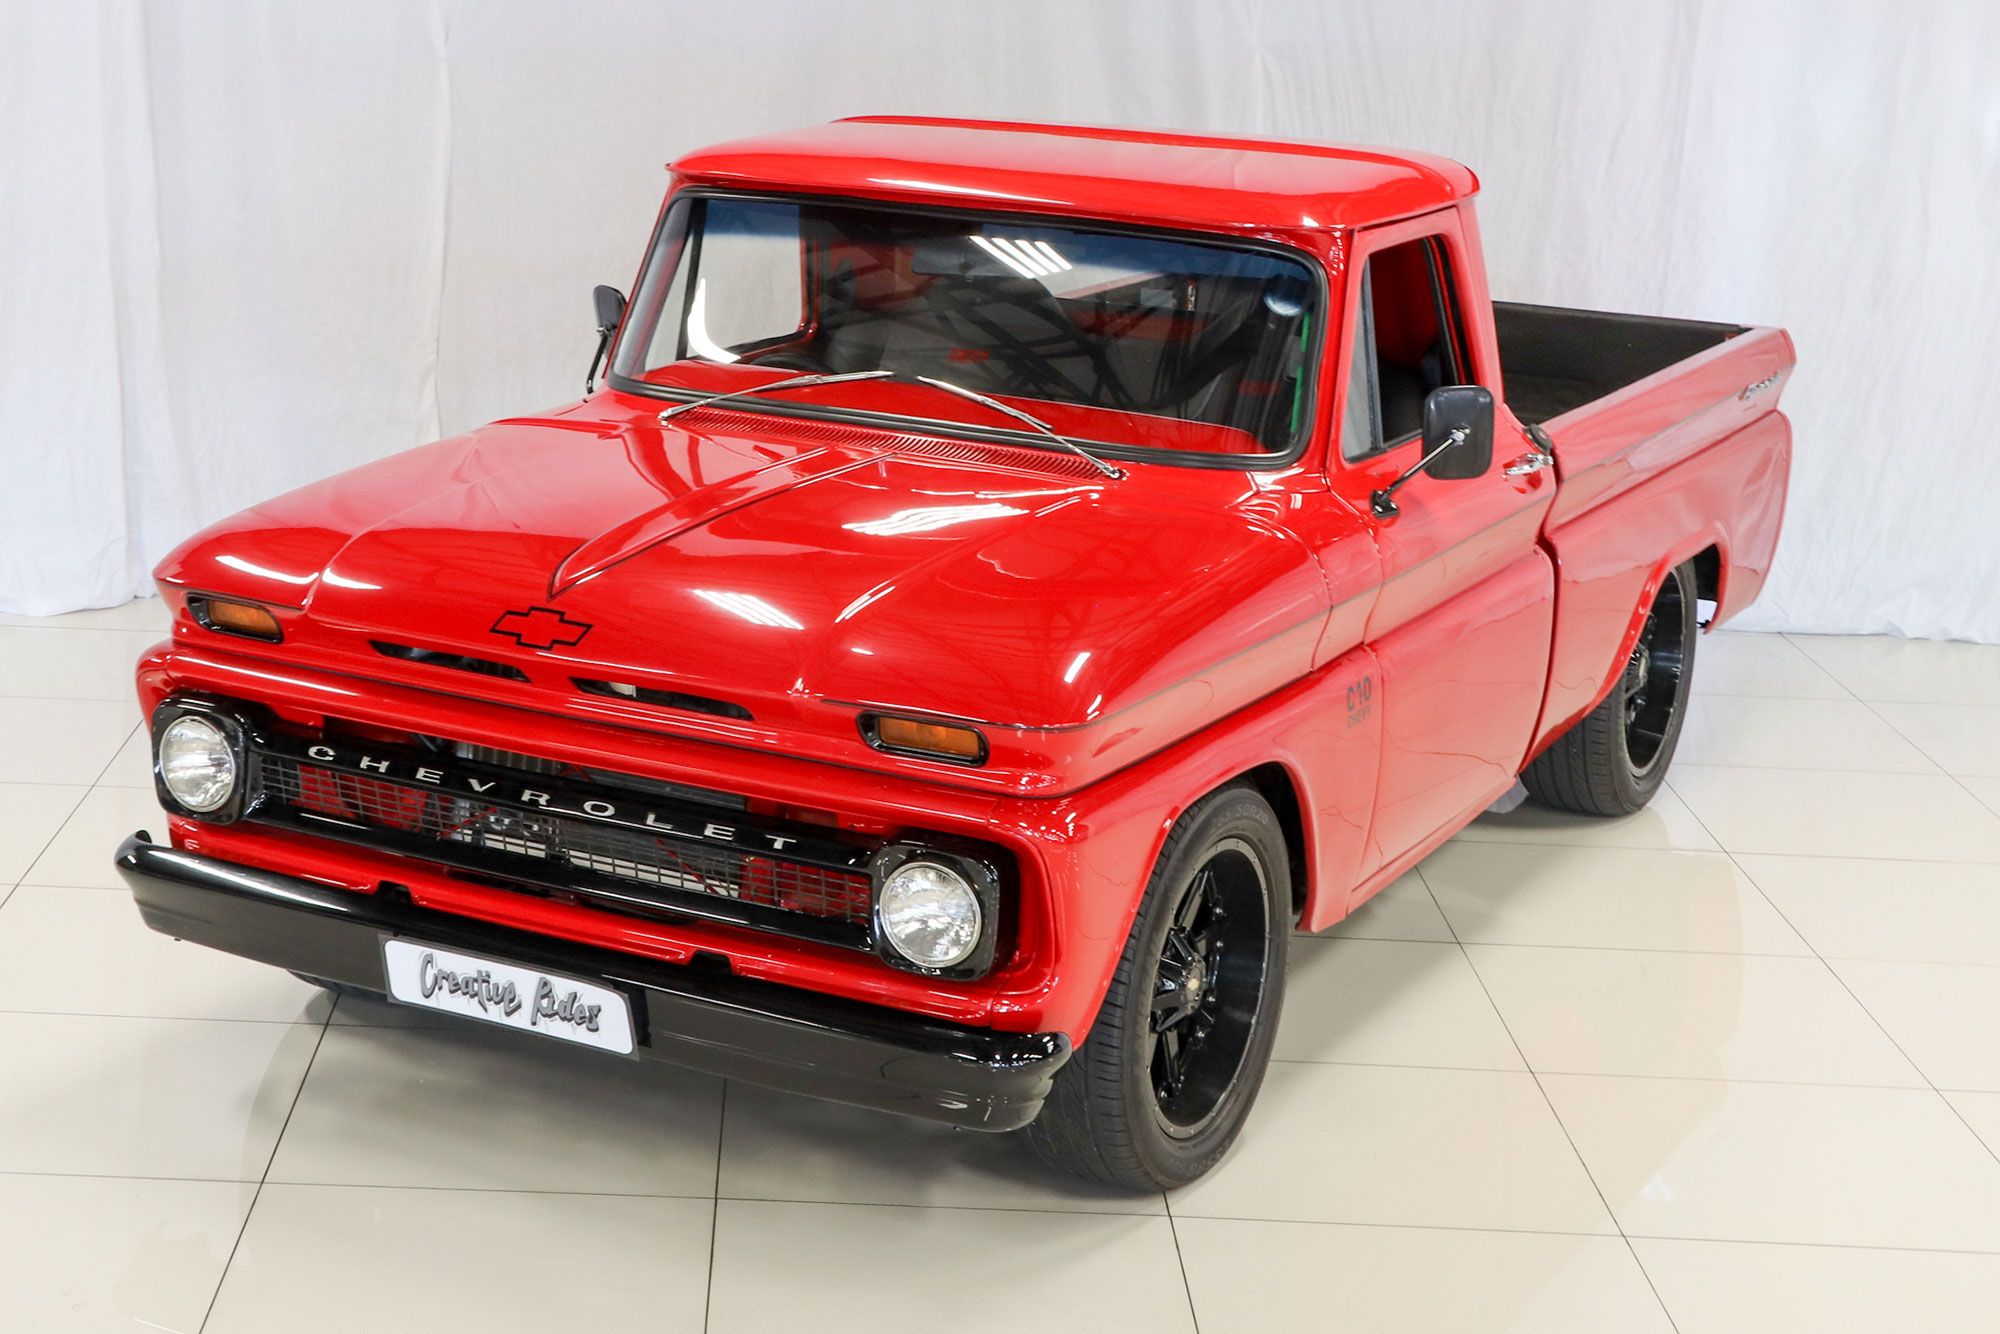 1966 Chevrolet C10 Fleetside Custom Pickup Creative Rides Truck Sold Vehicle Overview